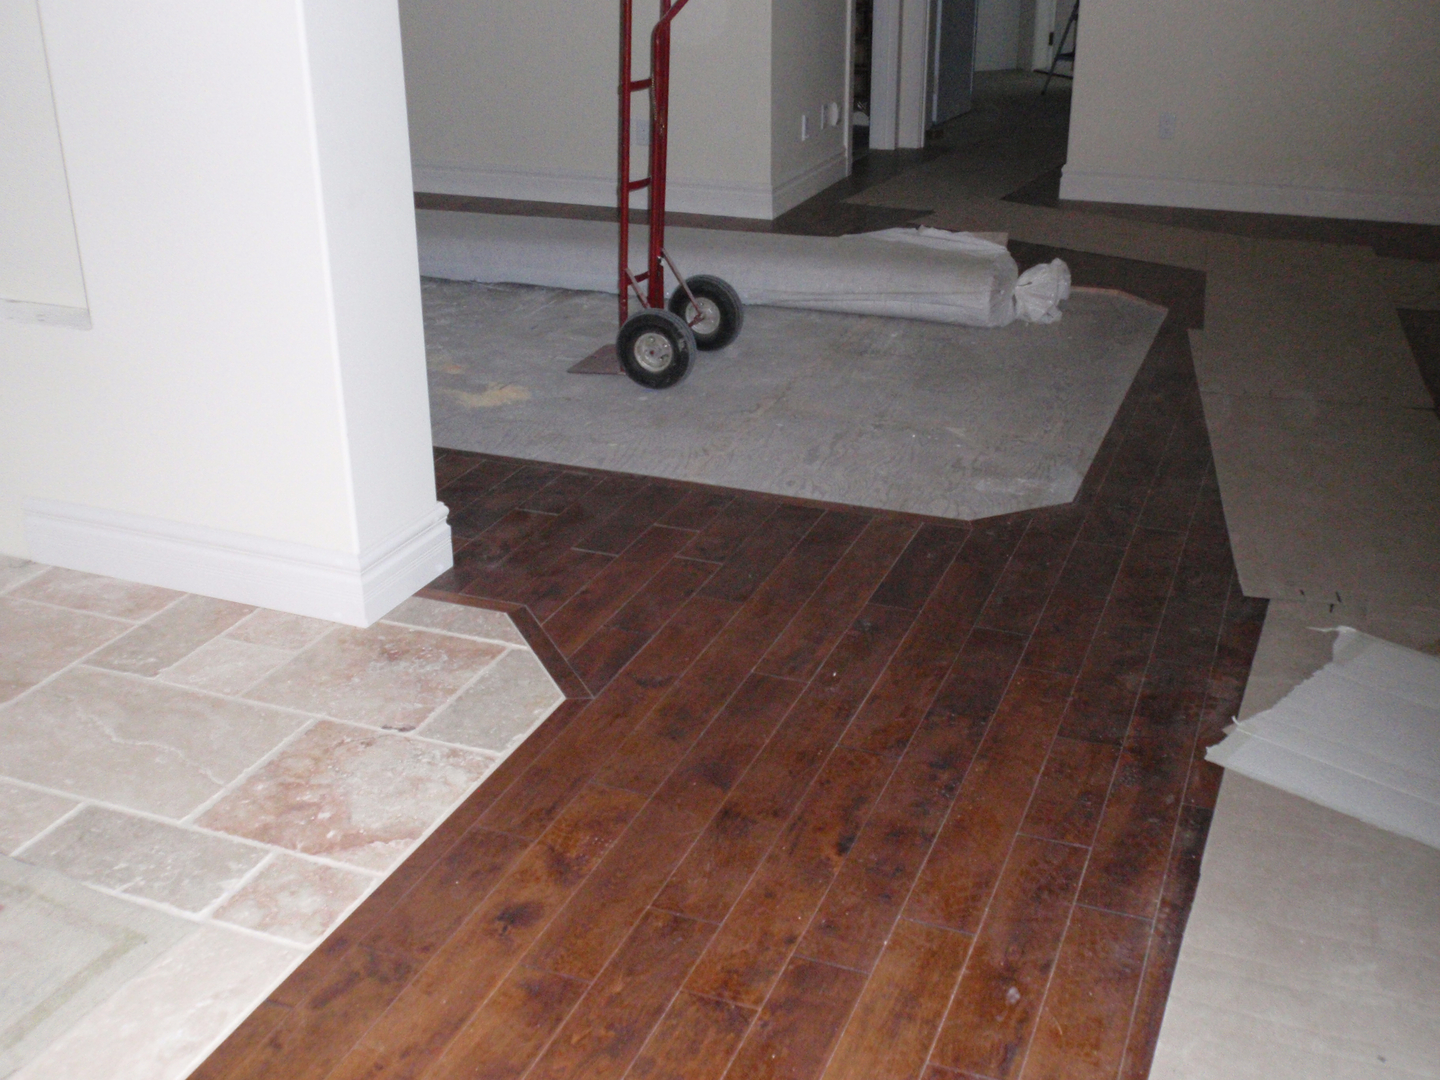 Wood floor installation hardwood flooring installation border work with carpet tile inset after wood install baanklon Choice Image